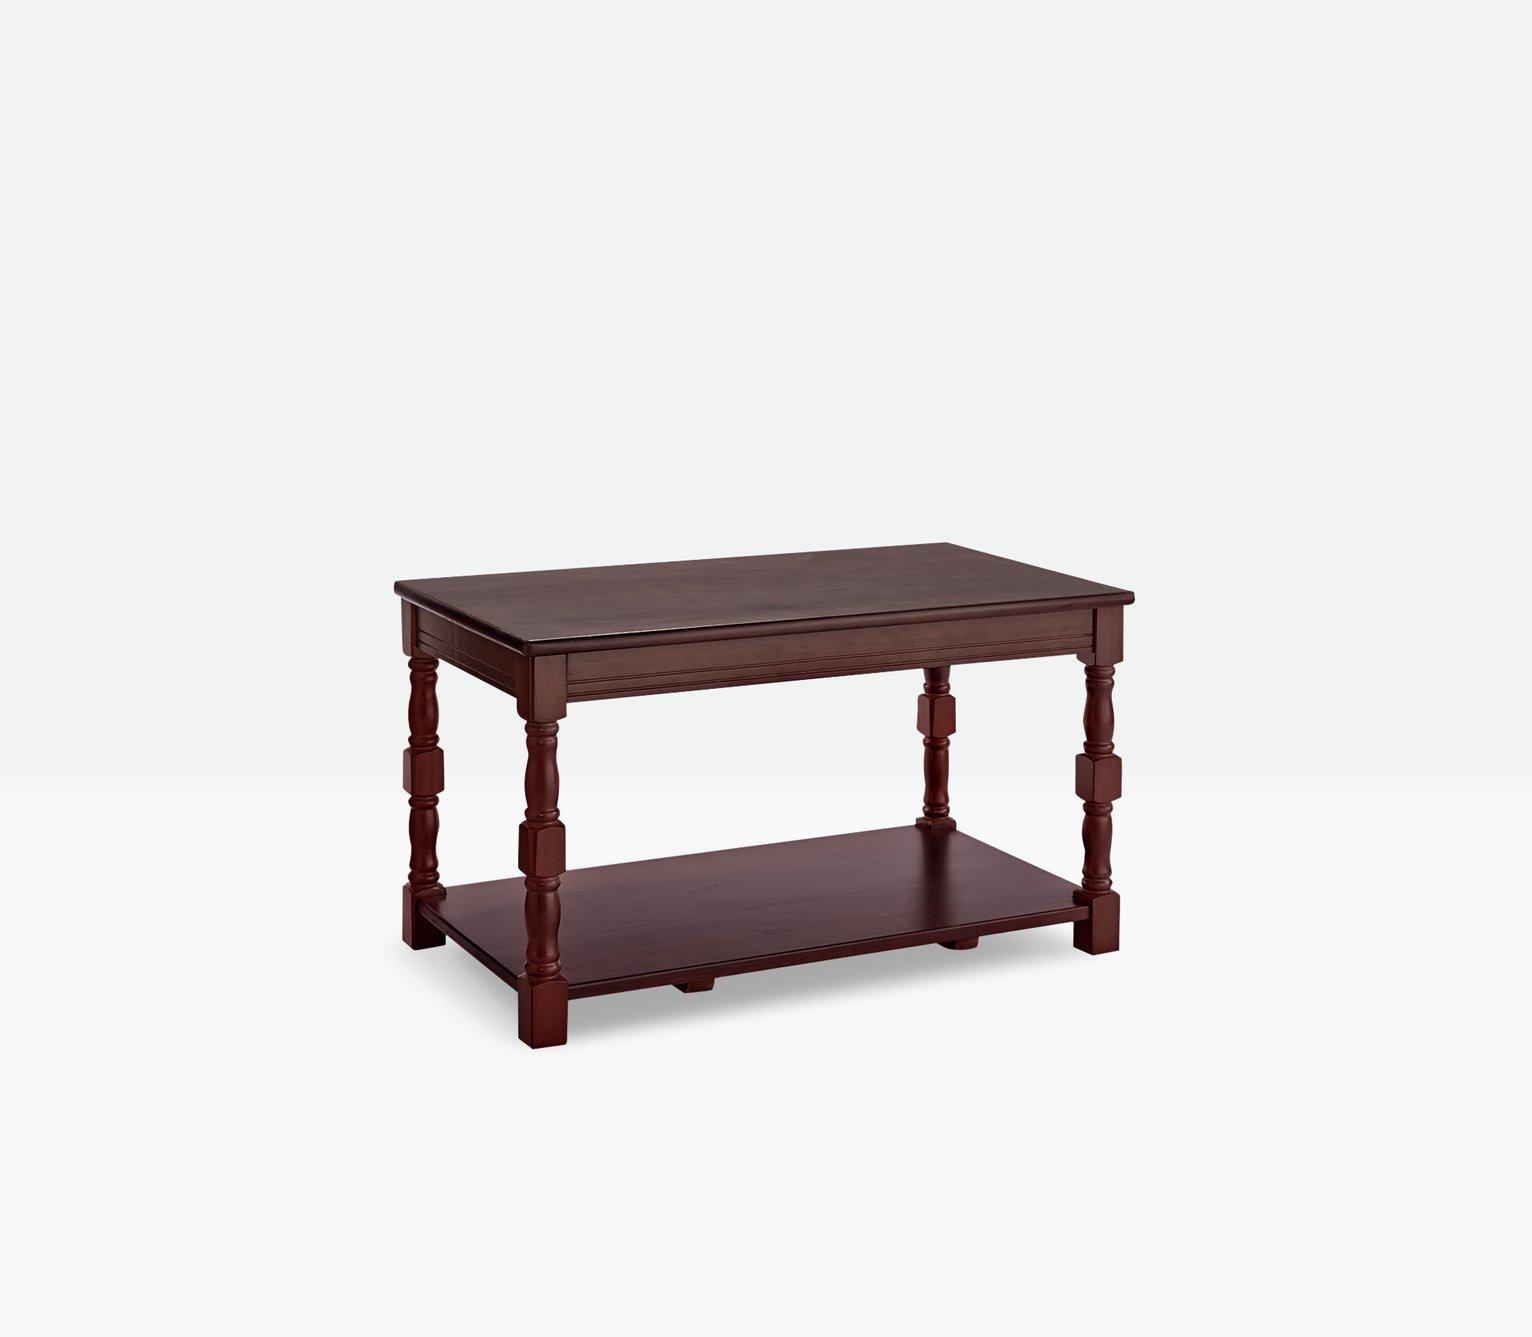 argos home devon solid pine coffee table walnut effect end narrow cherry bulb lamp the night stand replacement glass shelves thomasville furniture woodbridge pallet interior